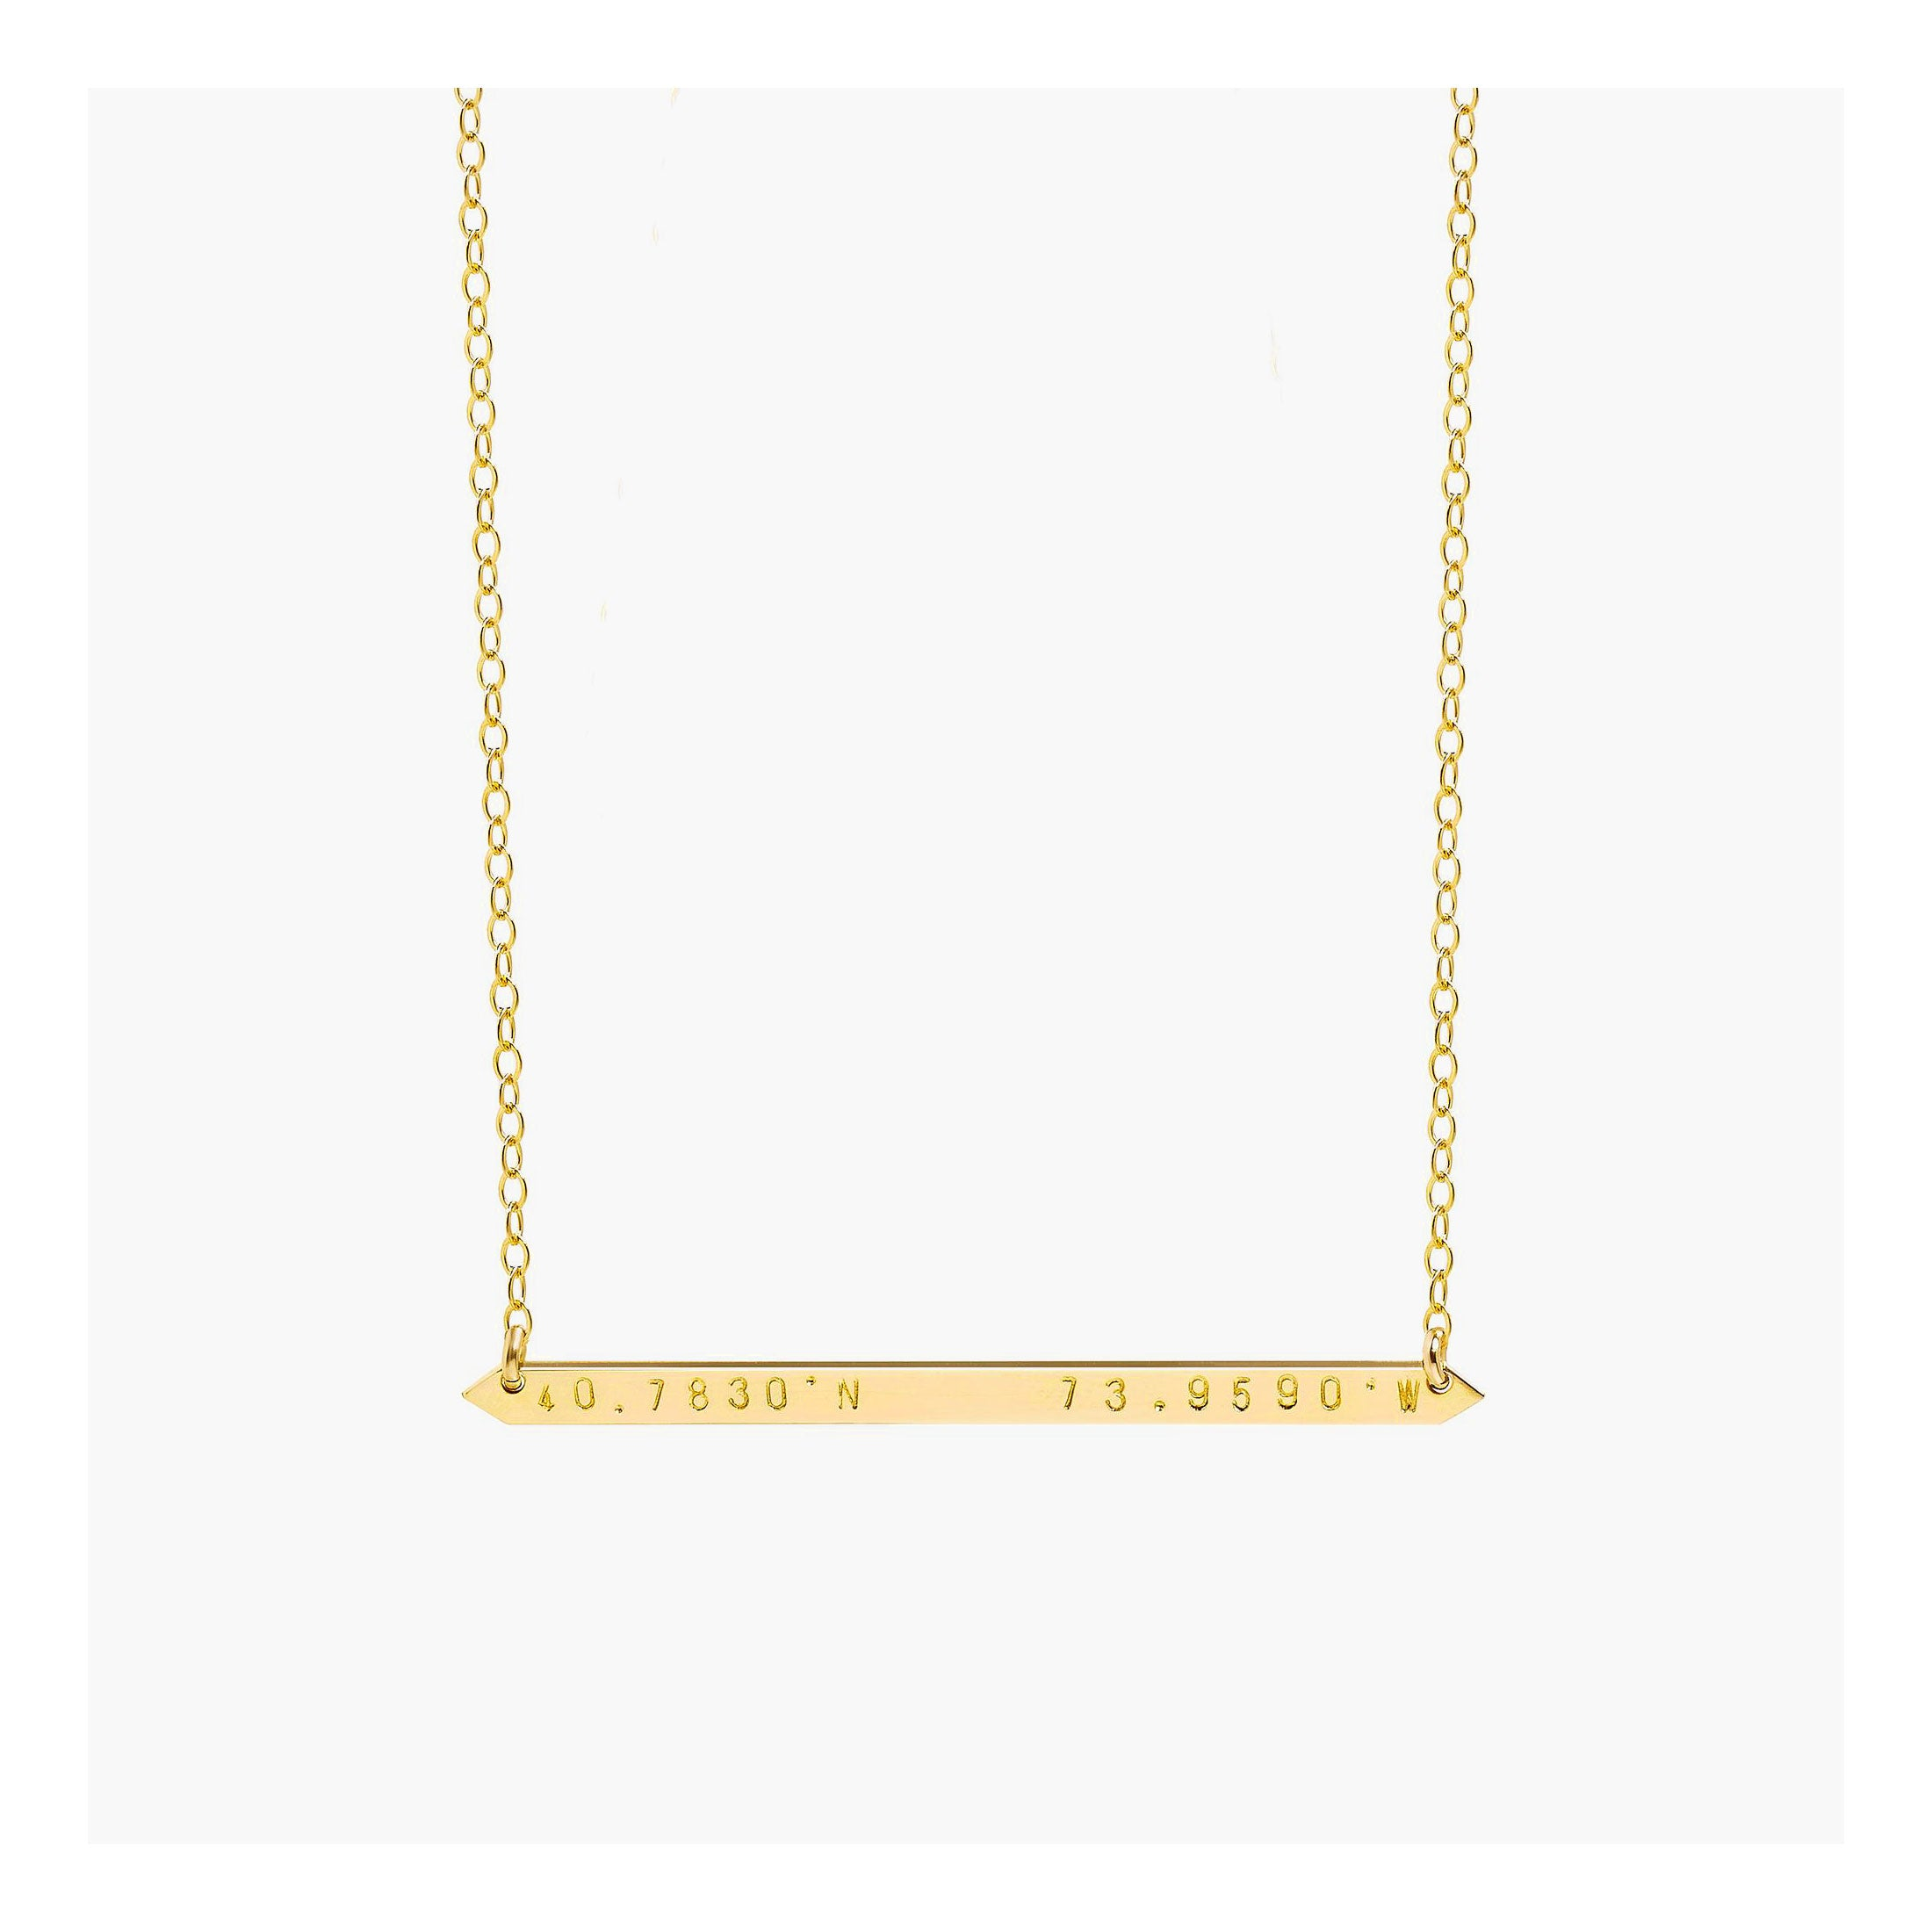 14k gold filled coordinates necklace